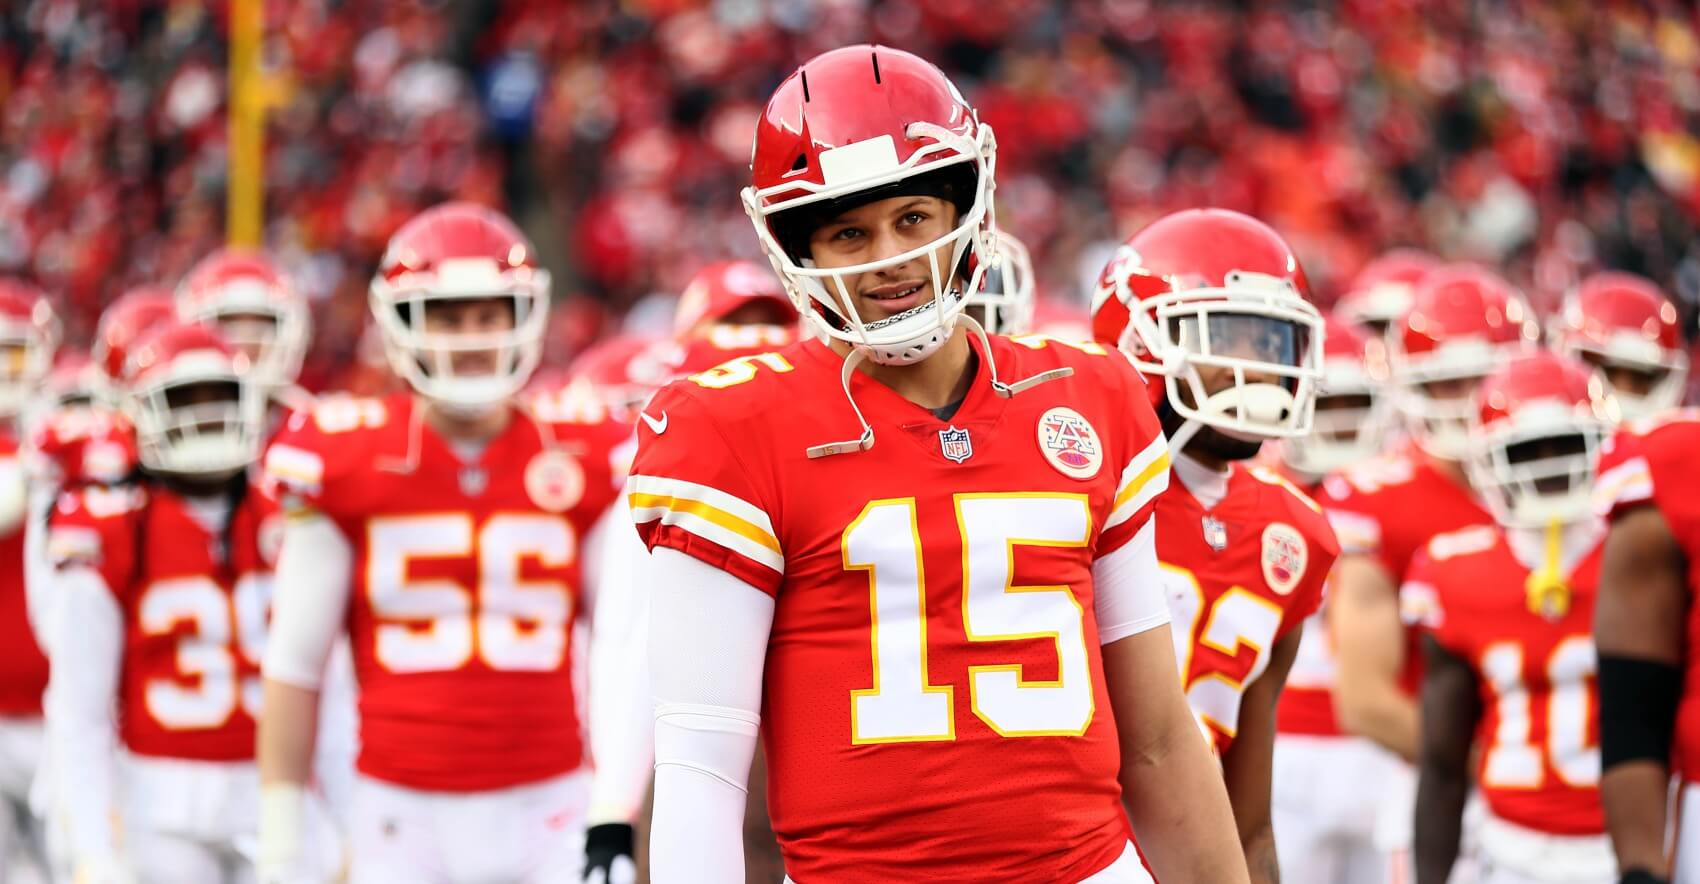 Fantasy Football: 25 QB Statistics from 2018